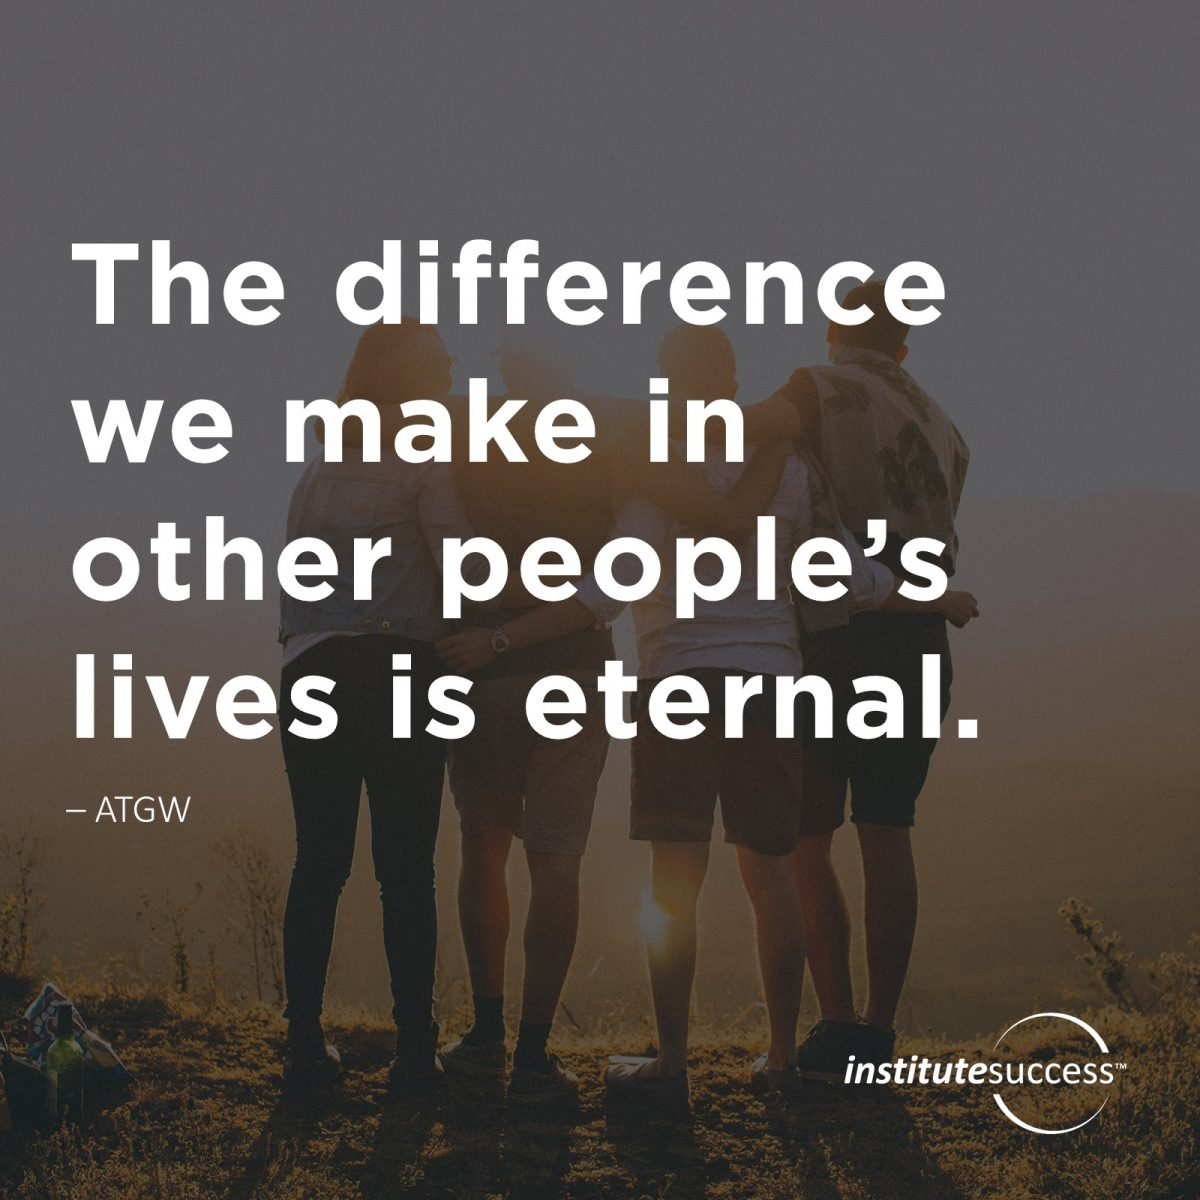 The difference we make in other people's lives is eternal. 	ATGW